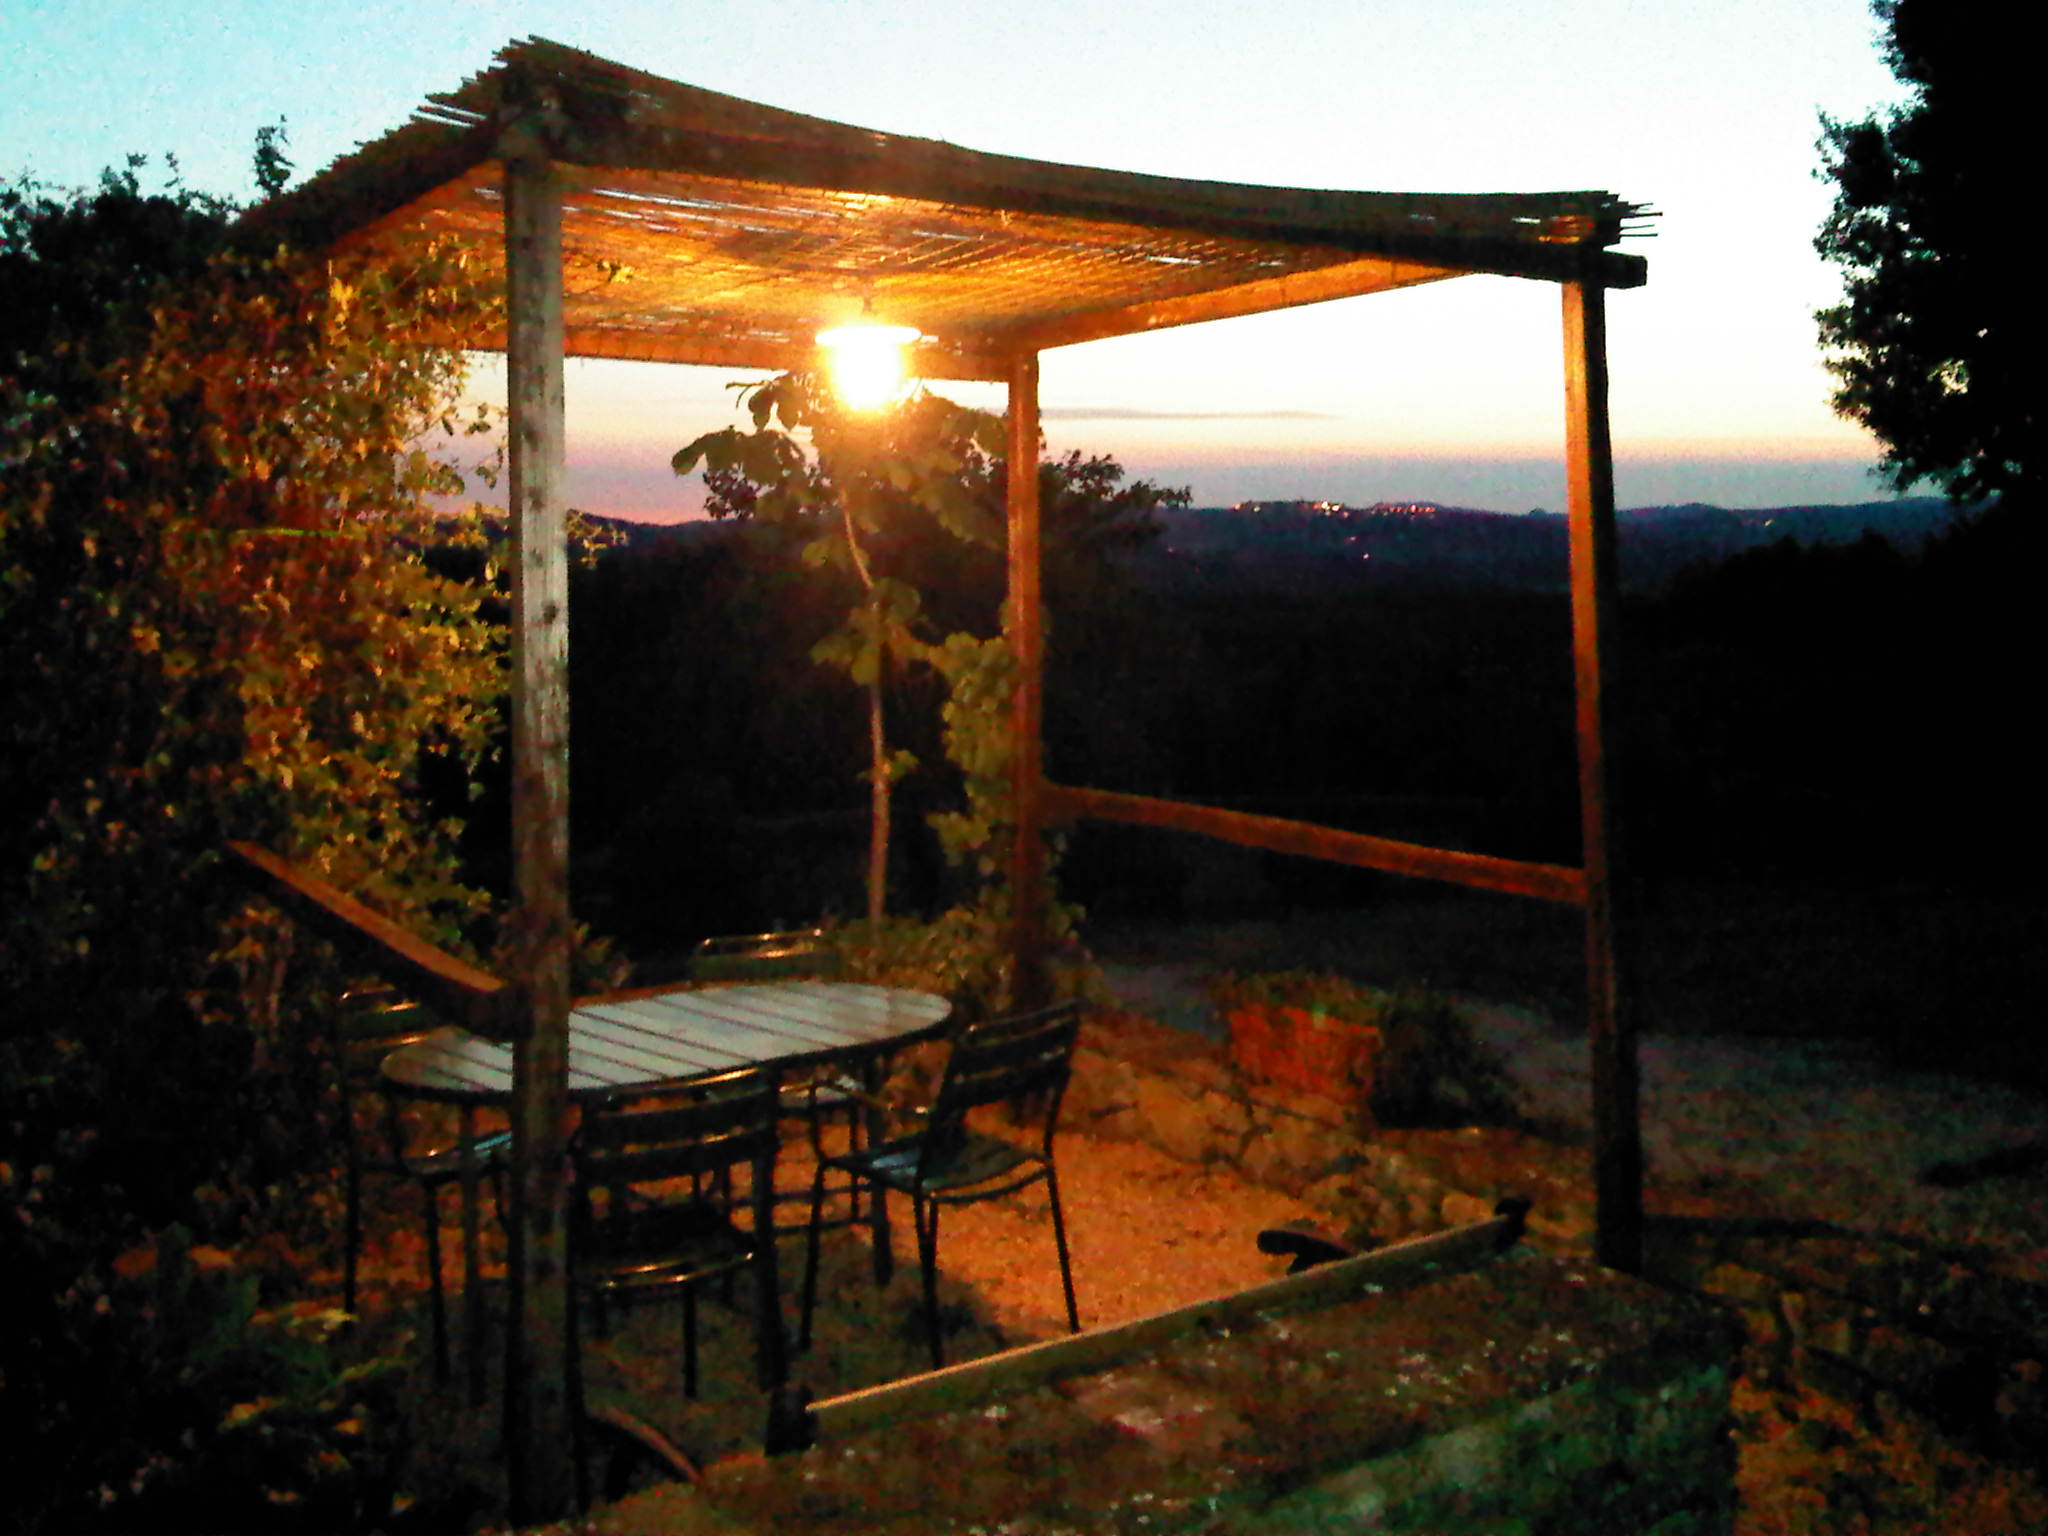 piccolo gazebo con vista panoramica